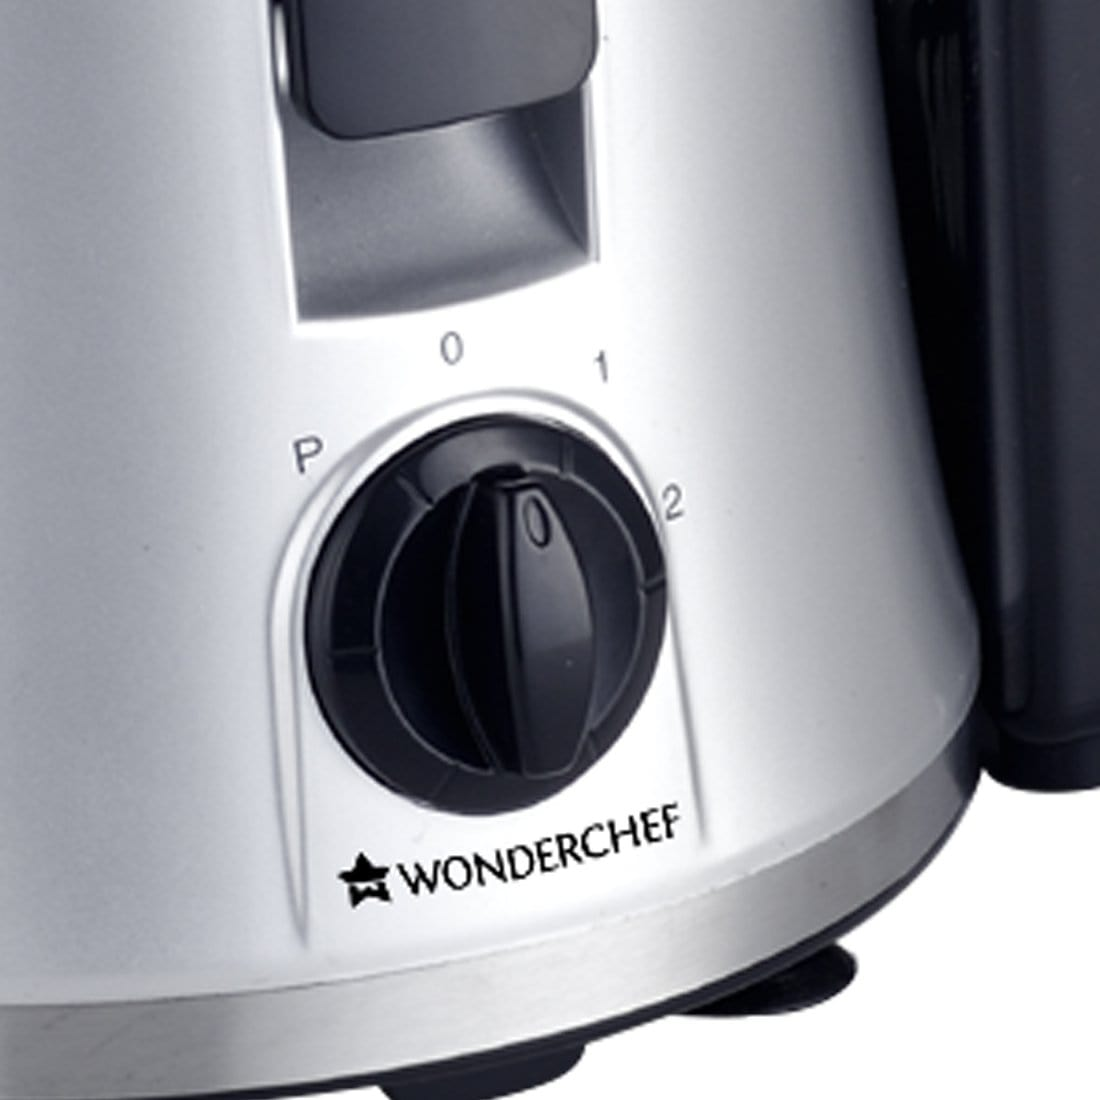 Wonderchef Prato Compact Juicer